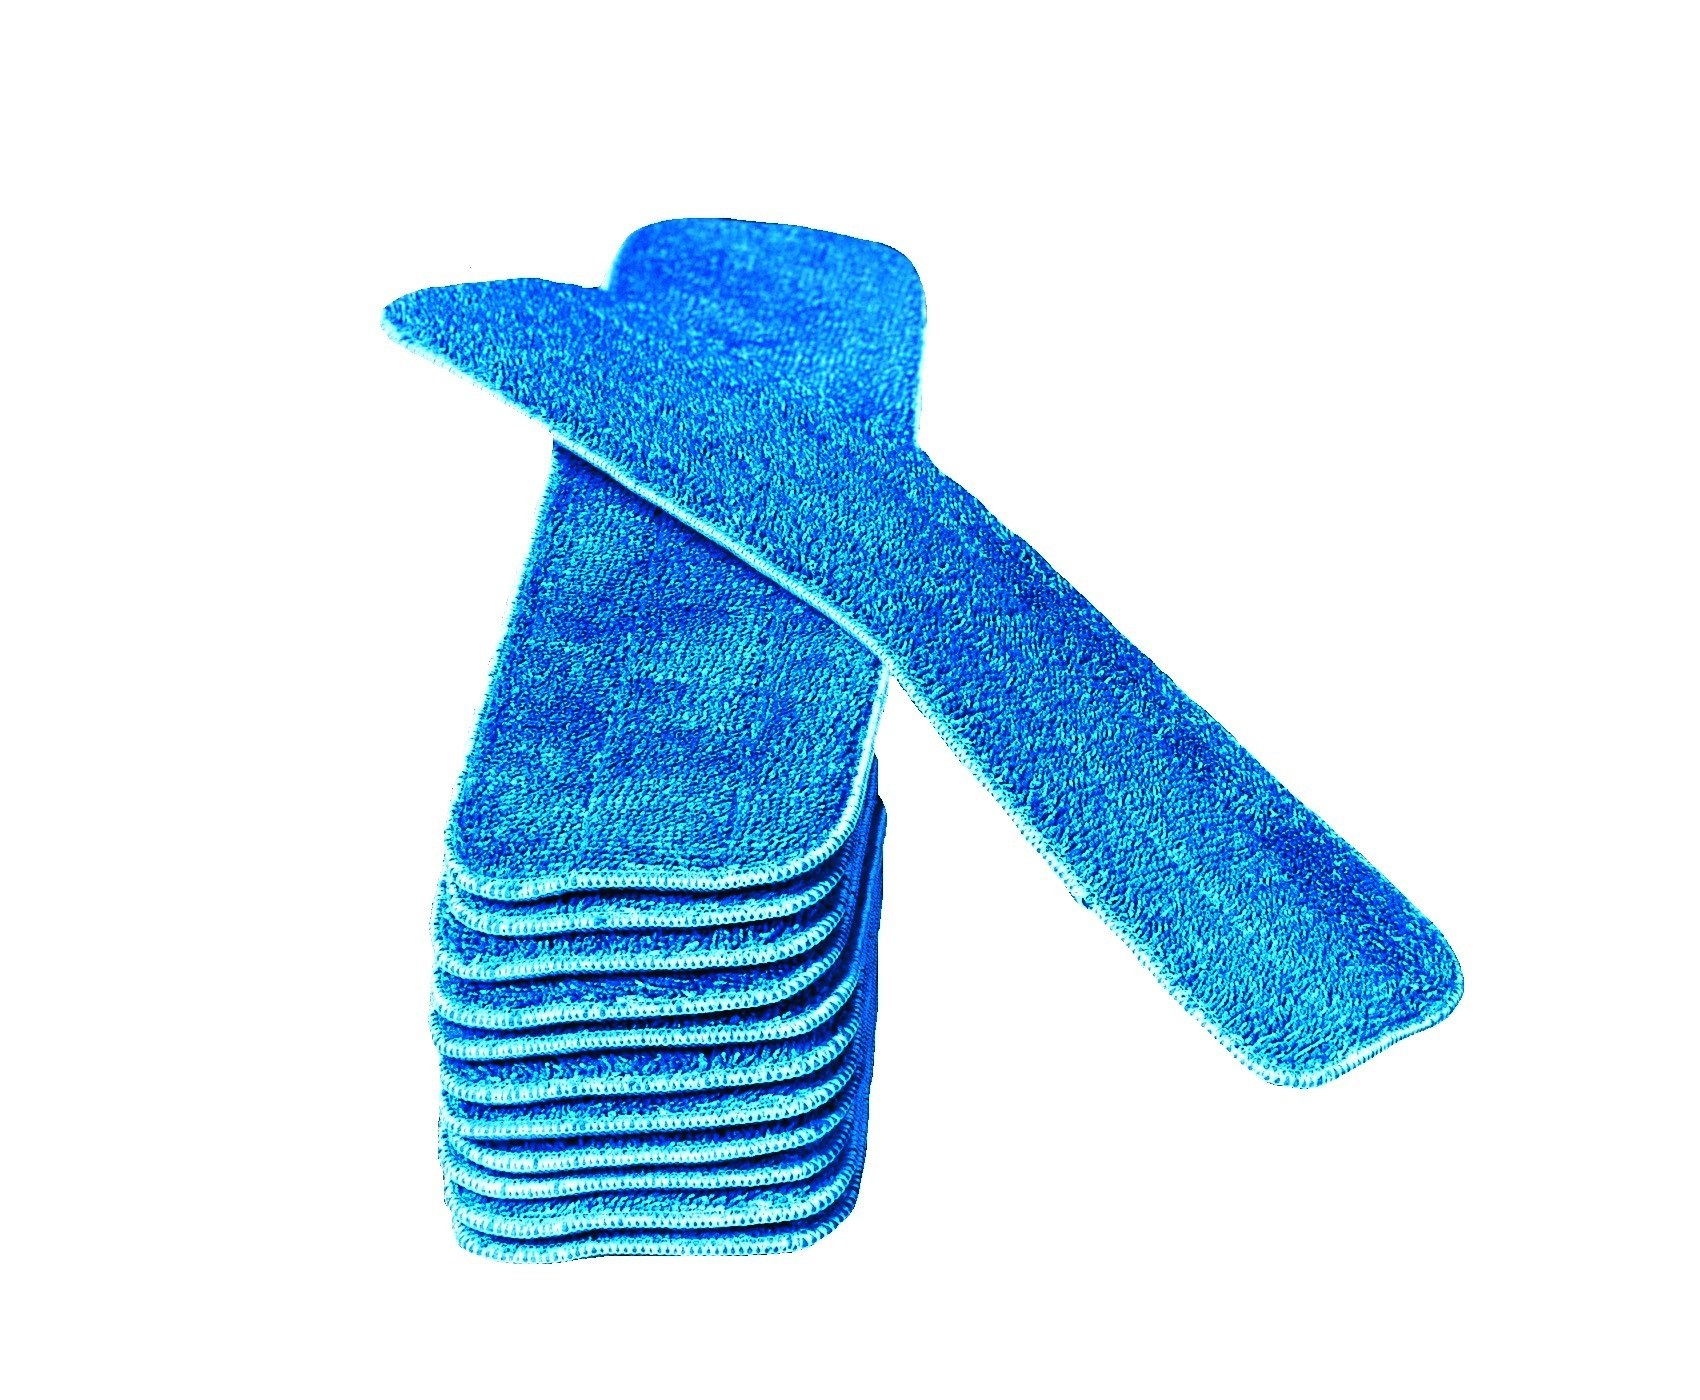 20 Inch Microfiber Mop Pad Refills Fits 16 to 19 Inch Mop Frames Wet & Dry Use Commercial Microfiber (12 Pack)